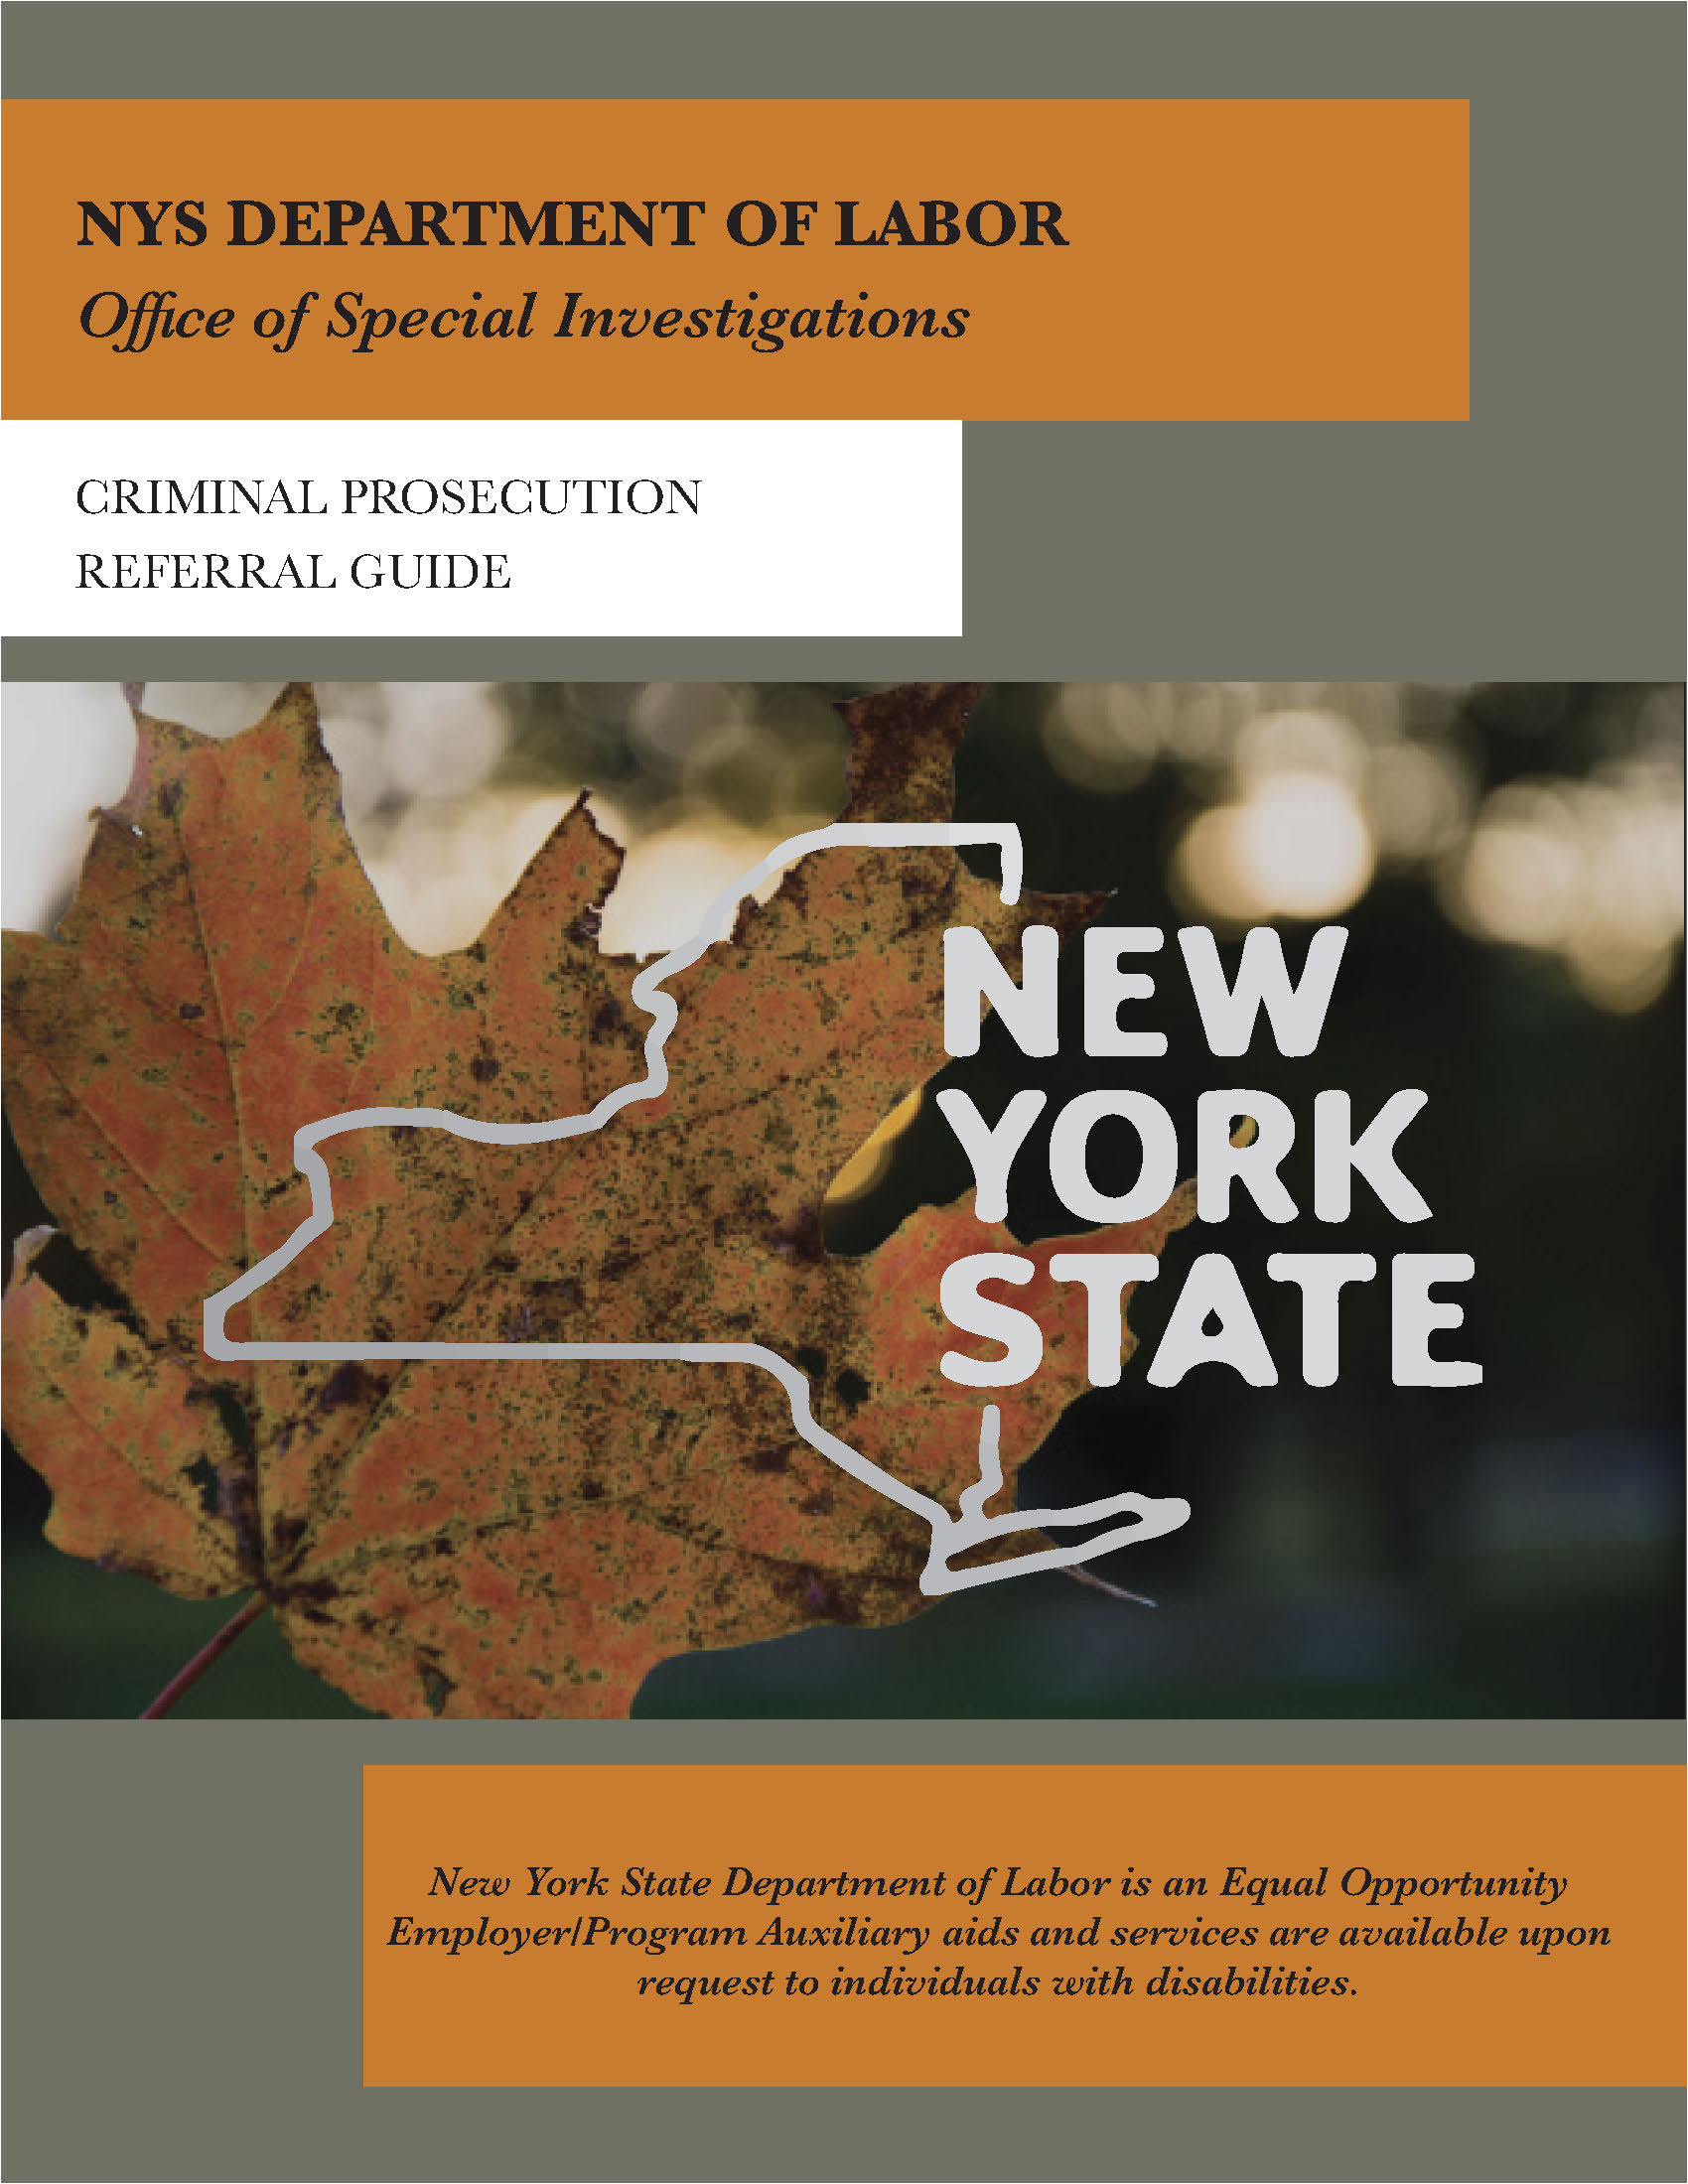 An outline of New York State is overlayed a maple leaf turned red and yellow with the title NYS Department of Labor OFFICE OF SPECIAL INVESTGATIONS Criminal Prosecution REFERRAL GUIDE displayed. An EEO statement is also displayed.